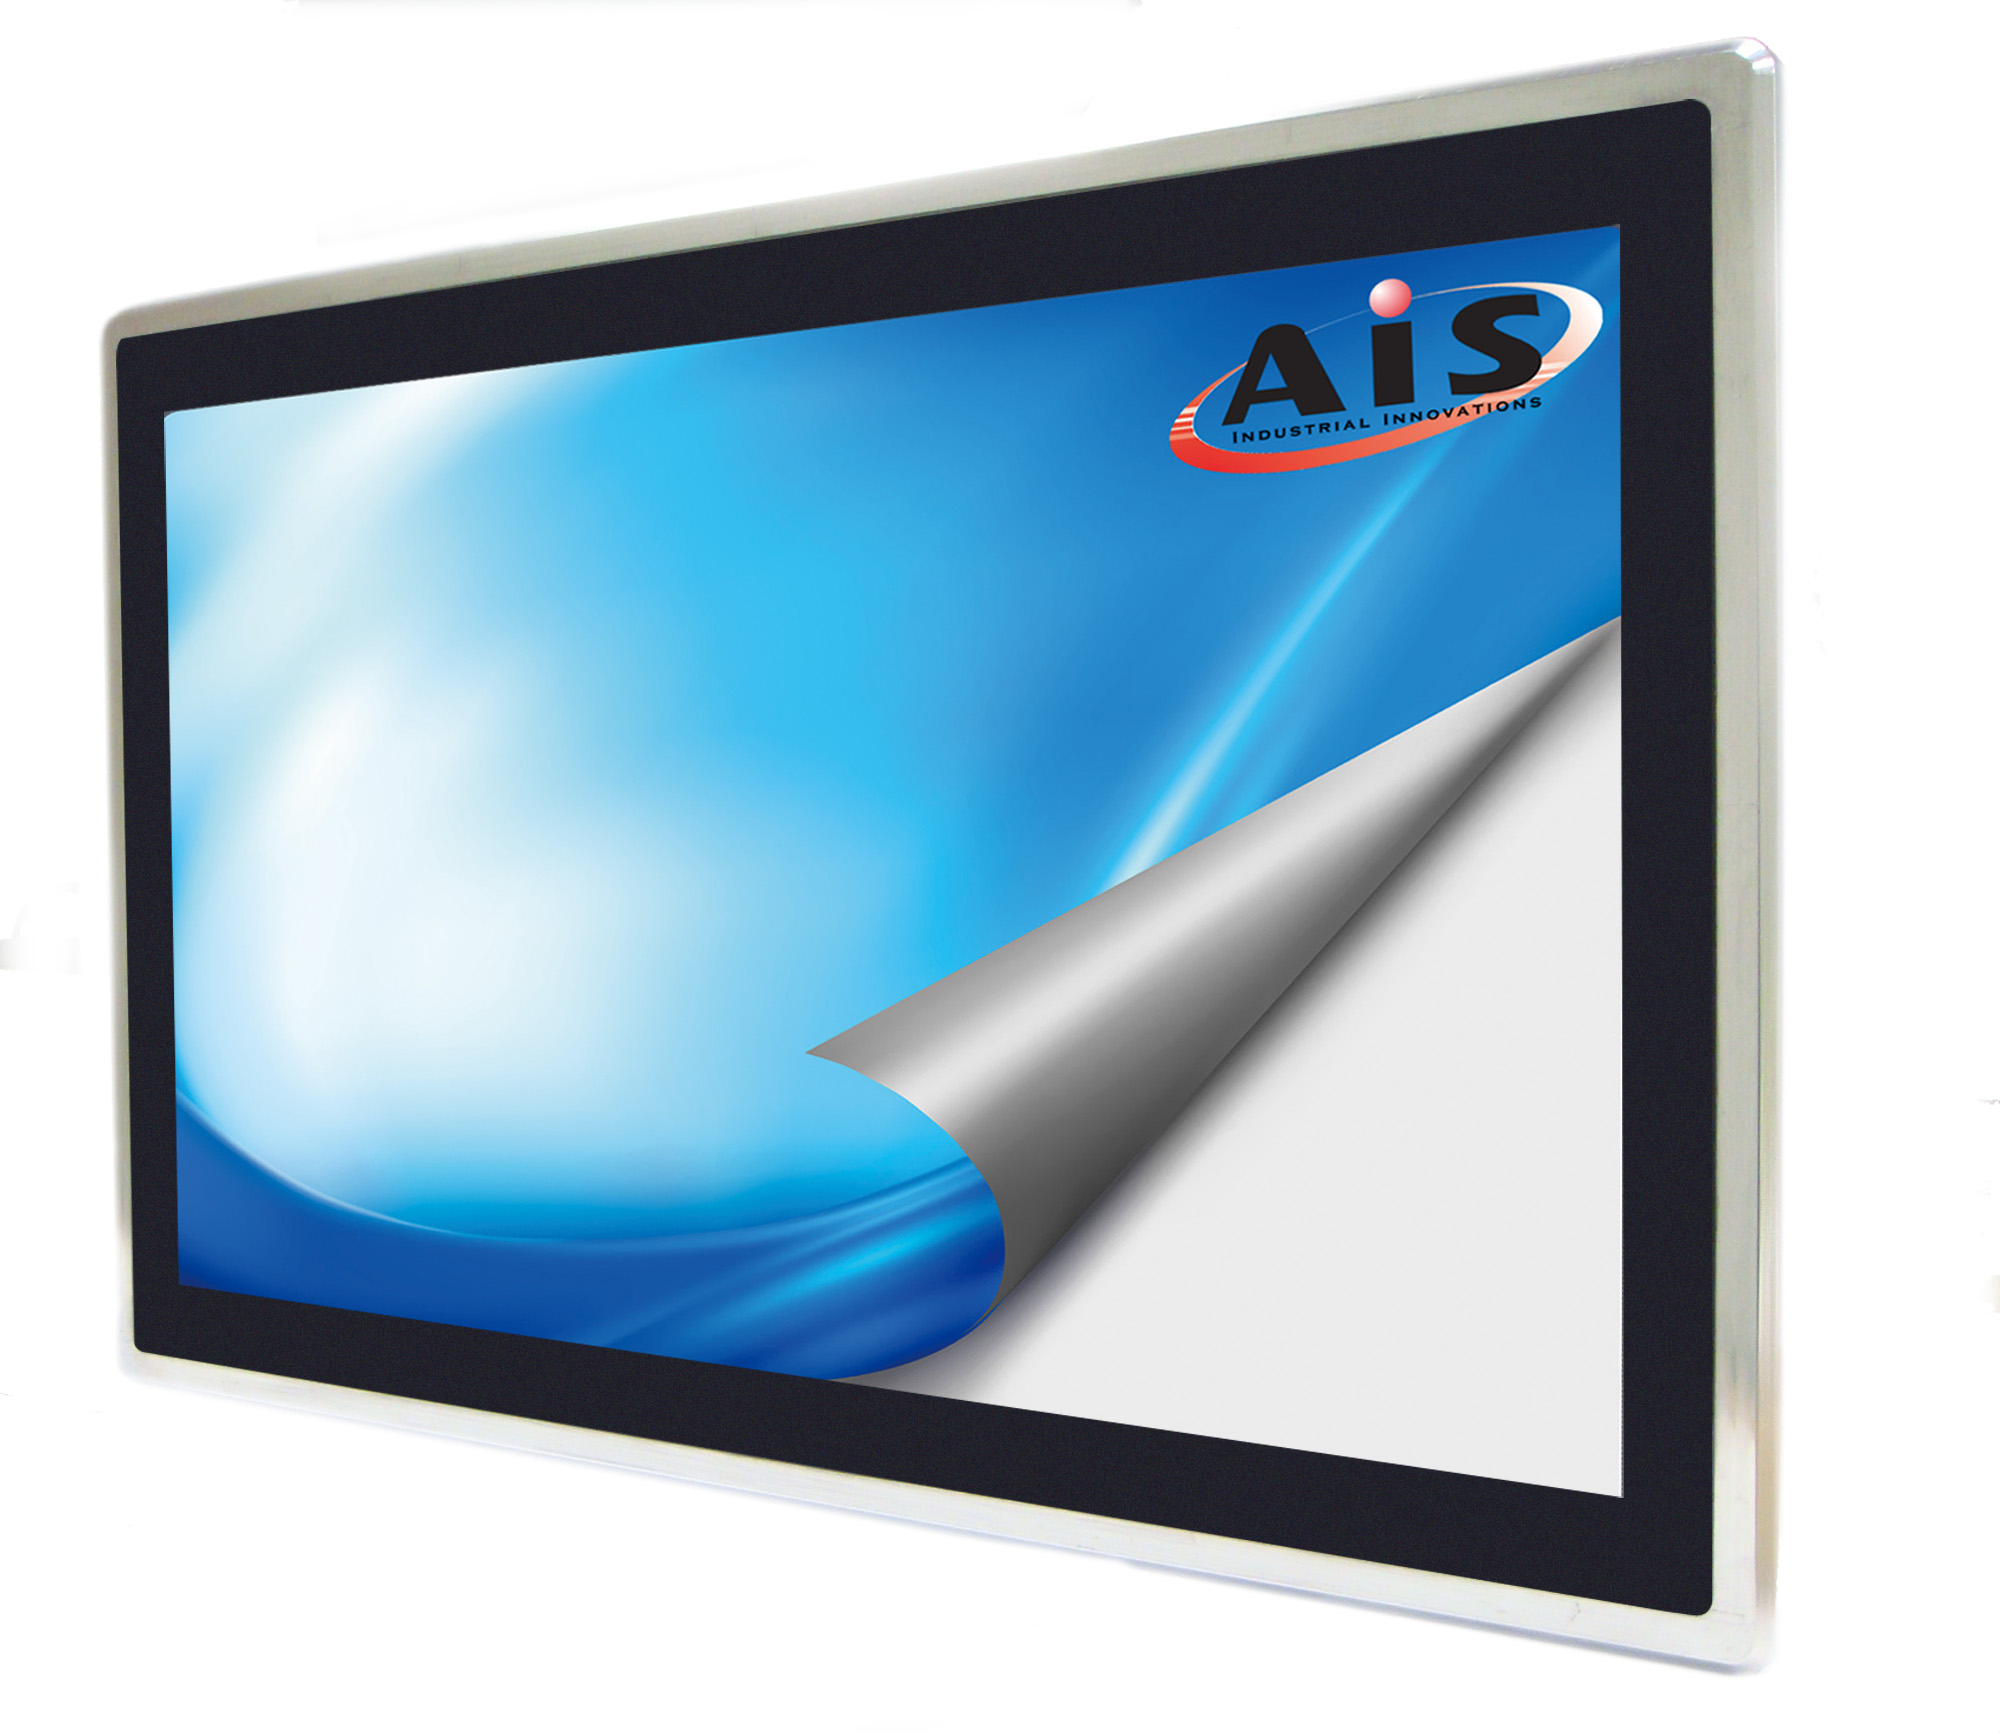 Industrial Monitor, Industrial Display